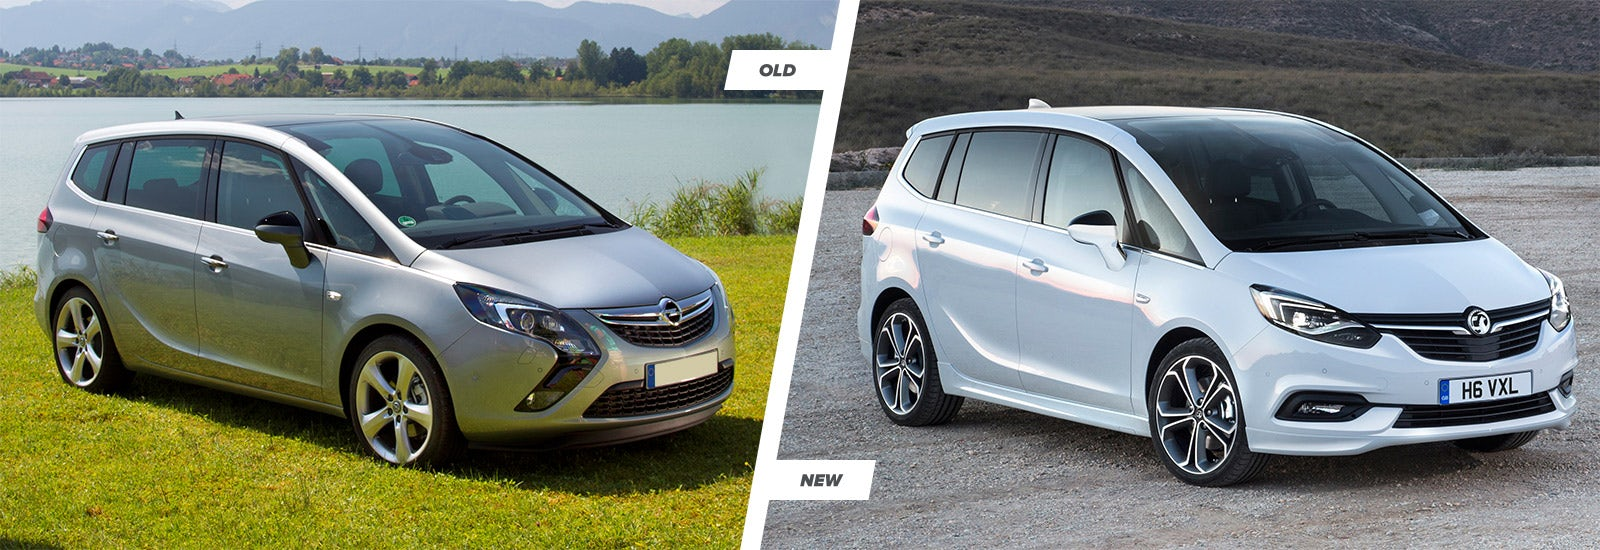 vauxhall zafira tourer old vs new compared carwow. Black Bedroom Furniture Sets. Home Design Ideas